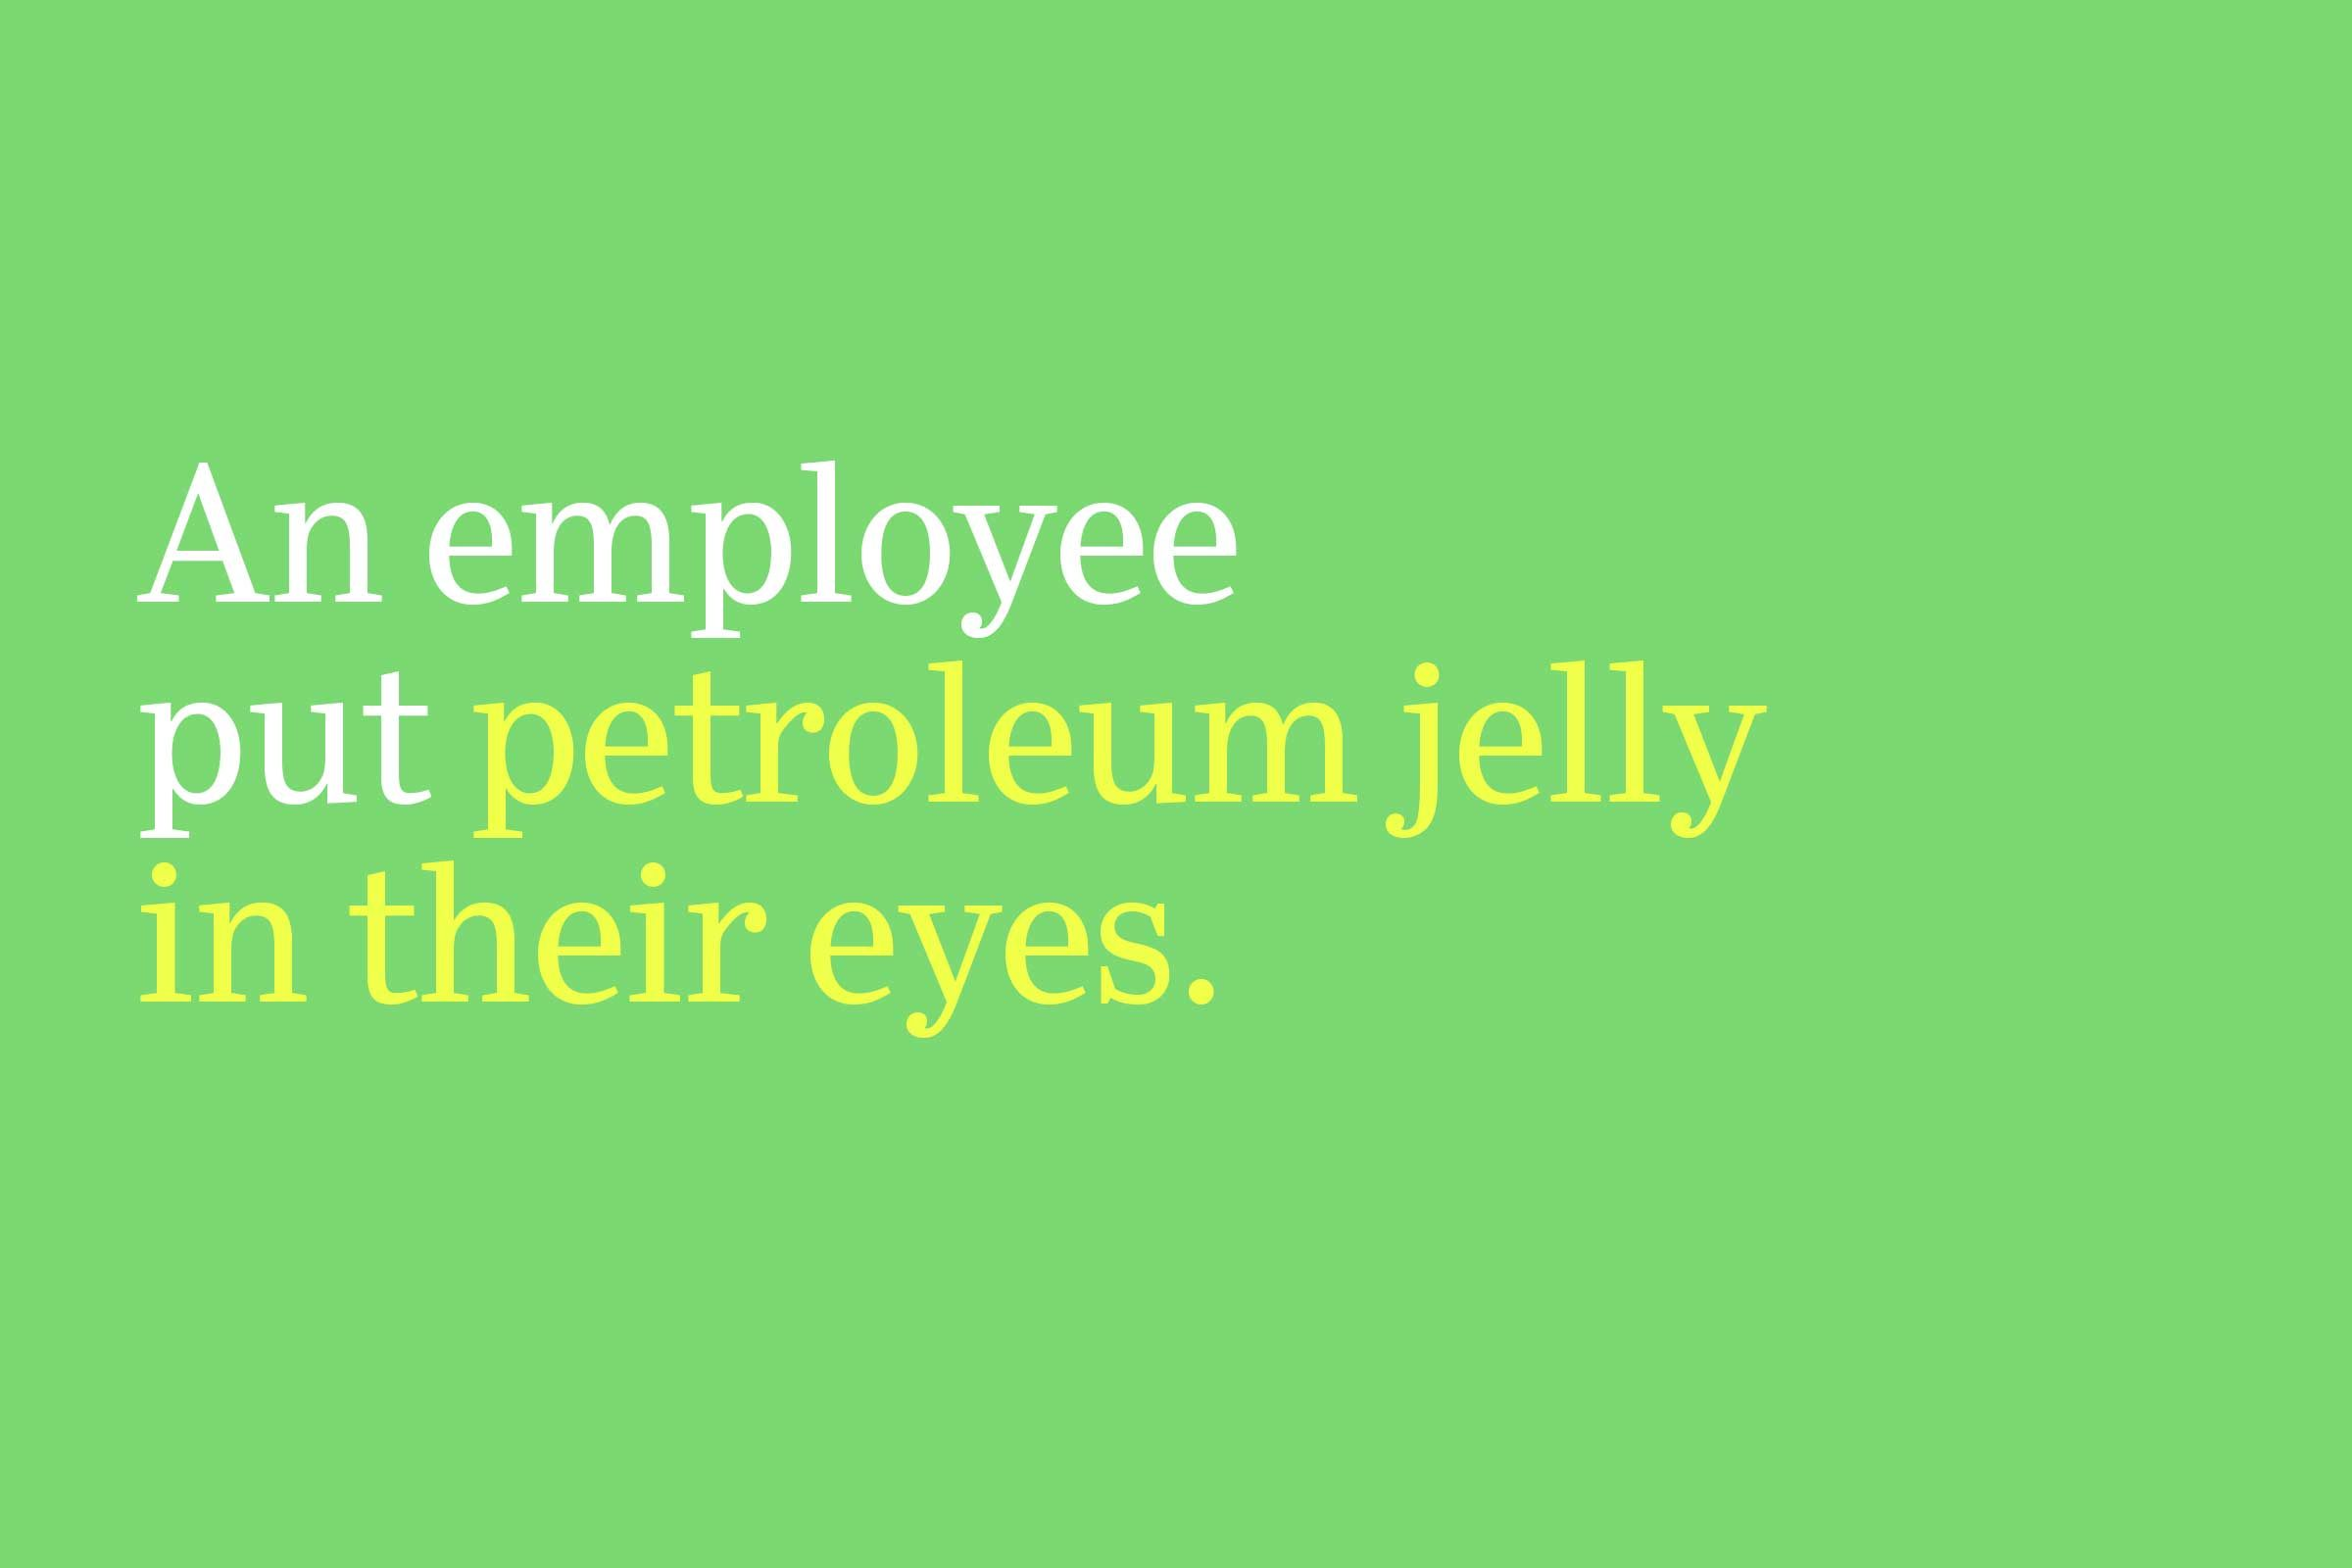 petroleum jelly in their eyes